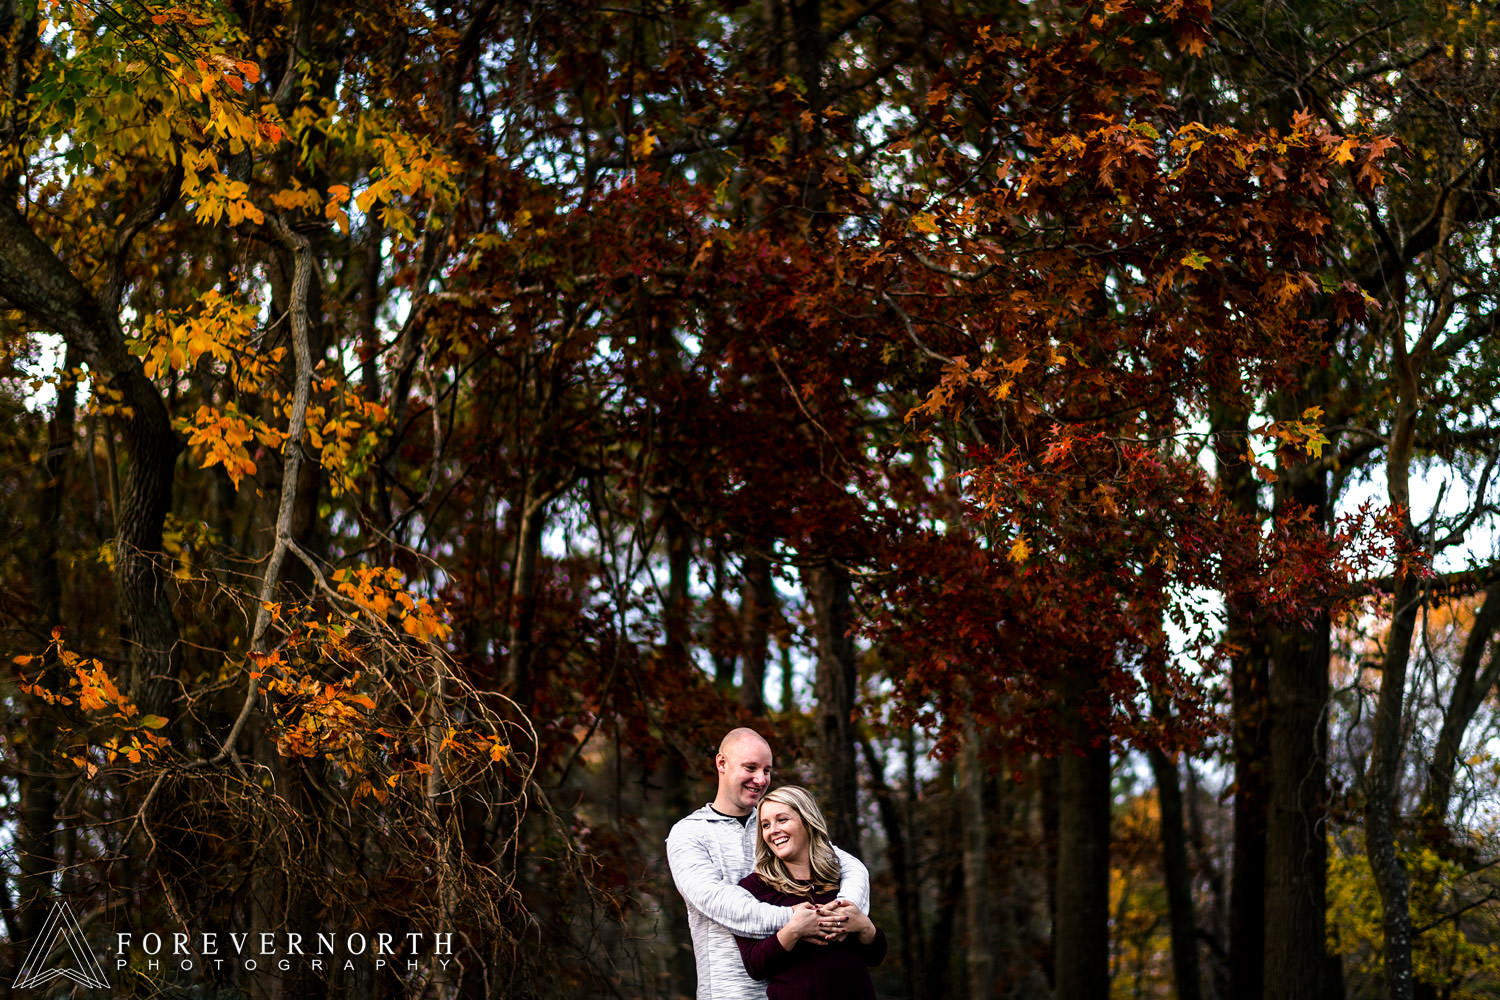 Brandi-Ricky-Allaire-State-Park-Engagement-Photos-17.JPG